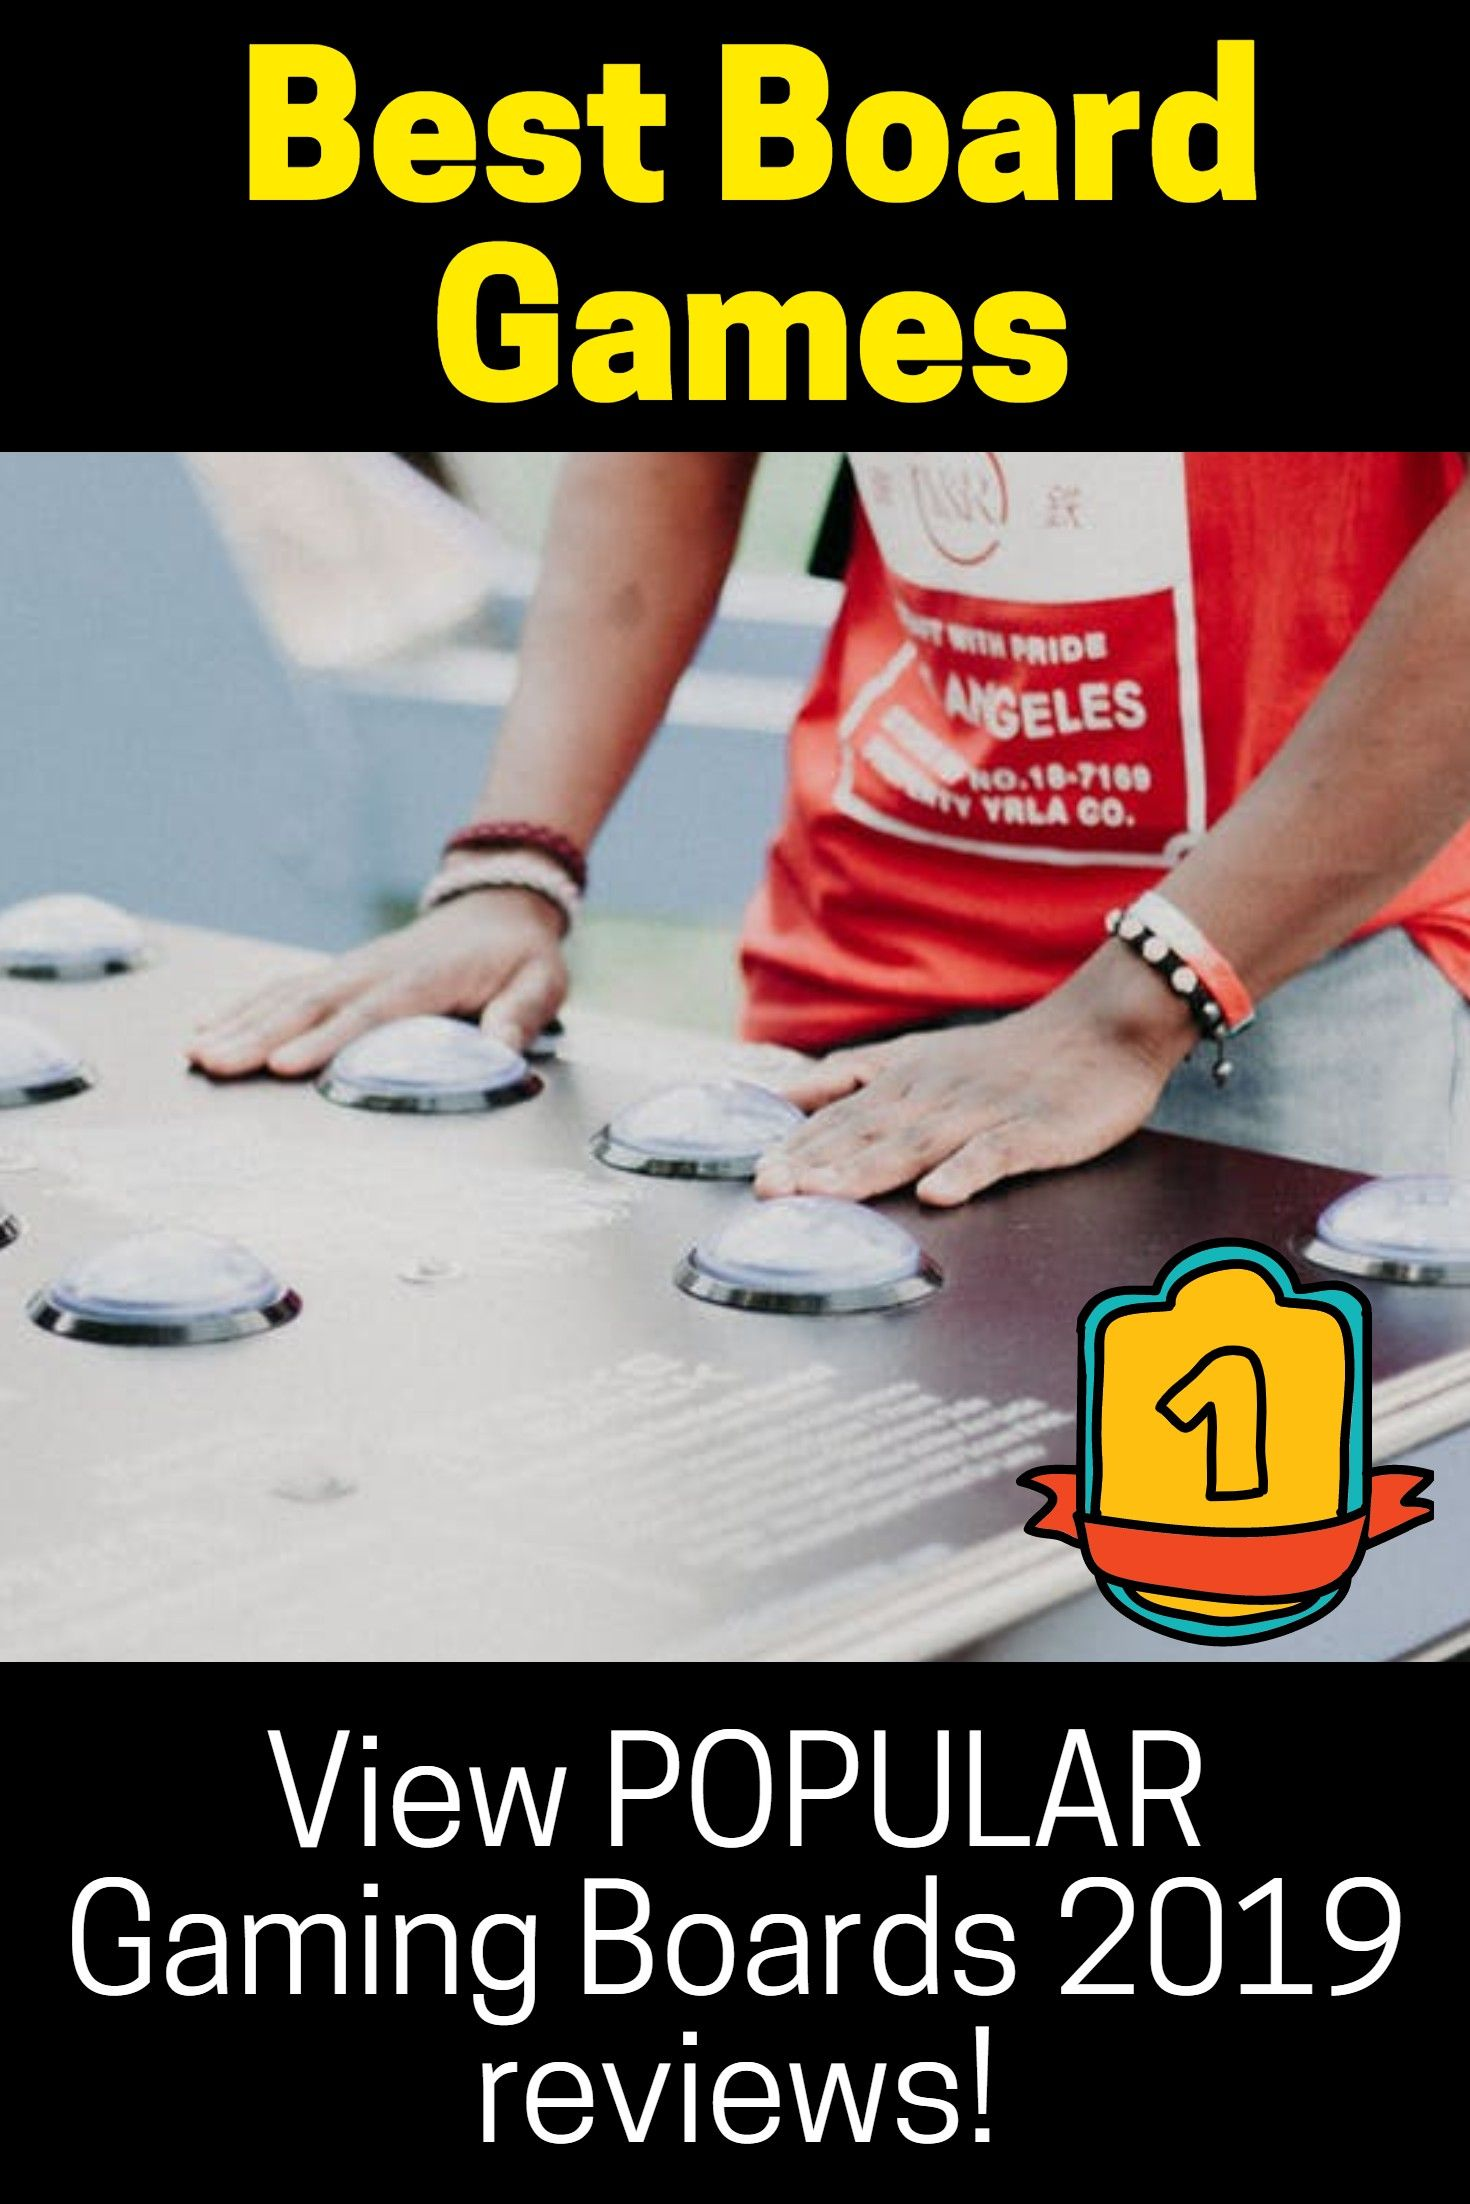 BEST BOARD GAMES View [POPULAR Gaming Boards] 2019